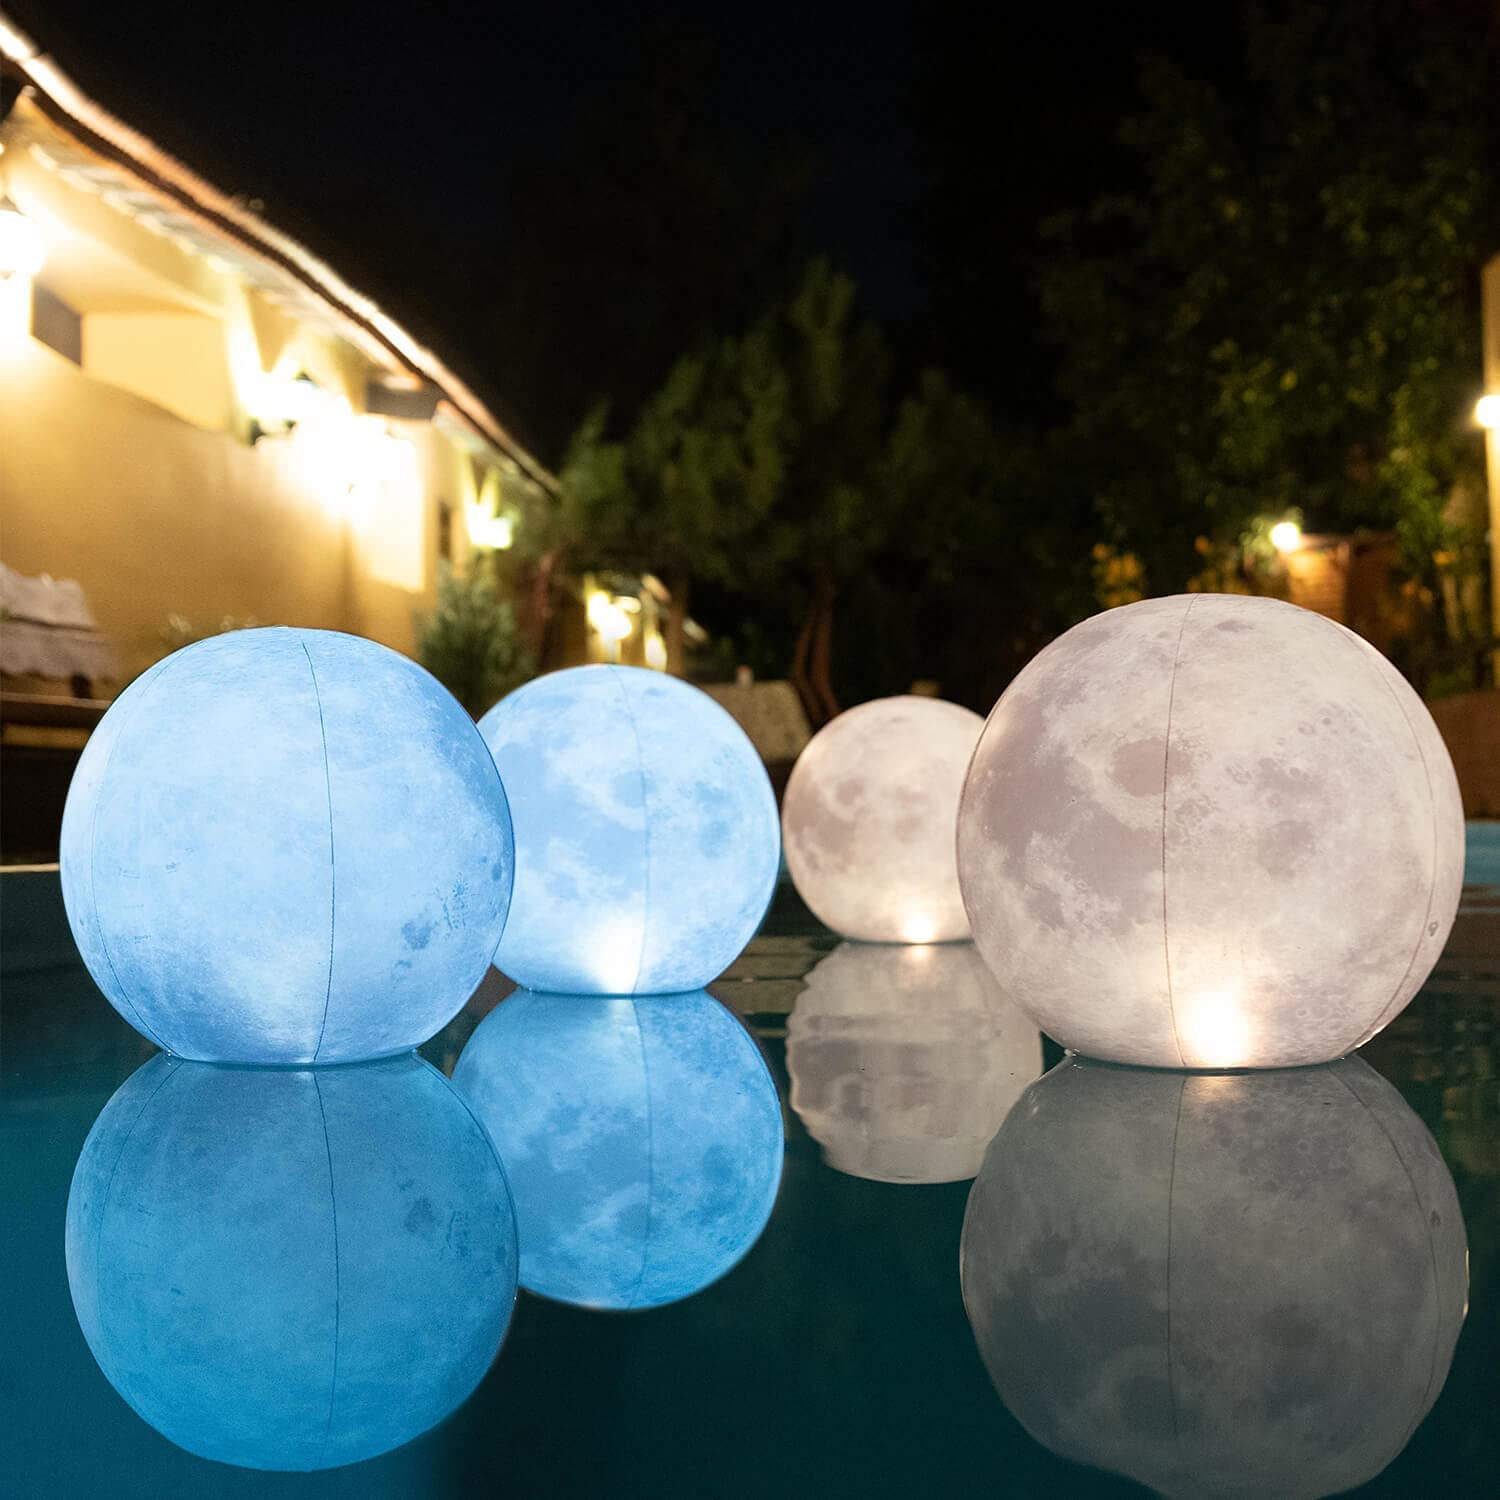 TIALLY Solar Floating Pool Lights Super Special SALE held Pack Shipping included Ligh 4 - of